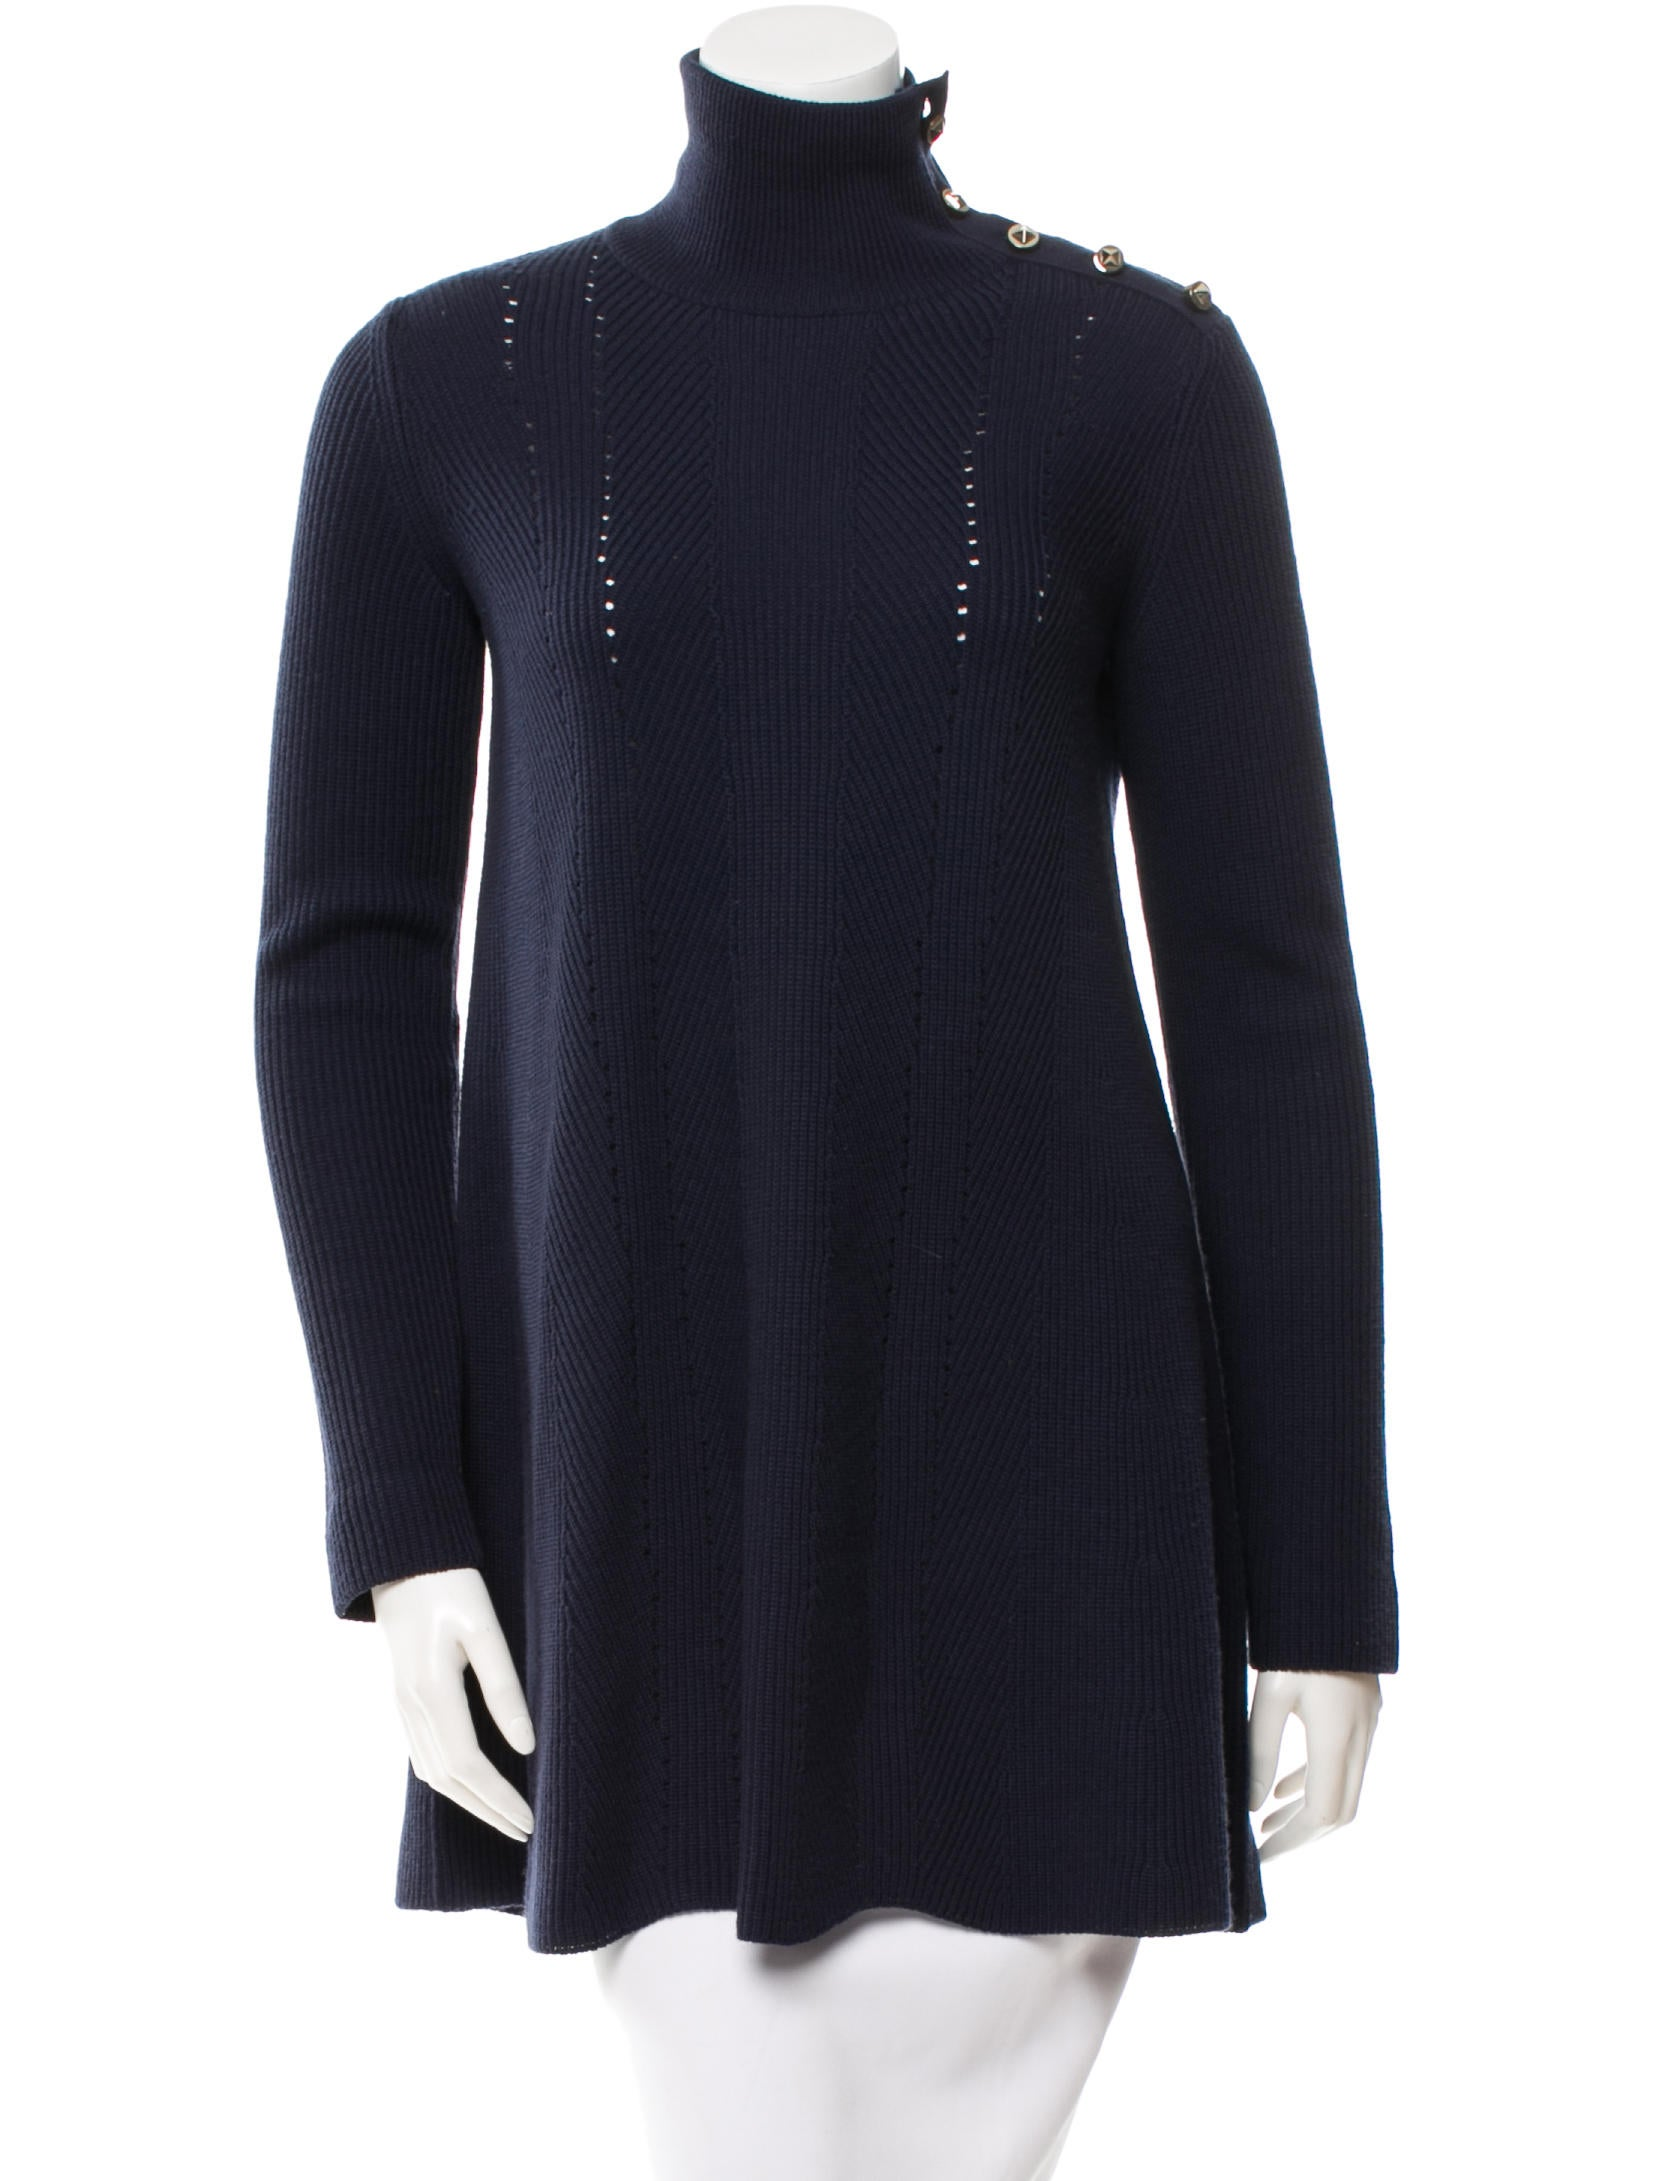 Valentino Wool Sweater Dress - Clothing - VAL38857 | The RealReal